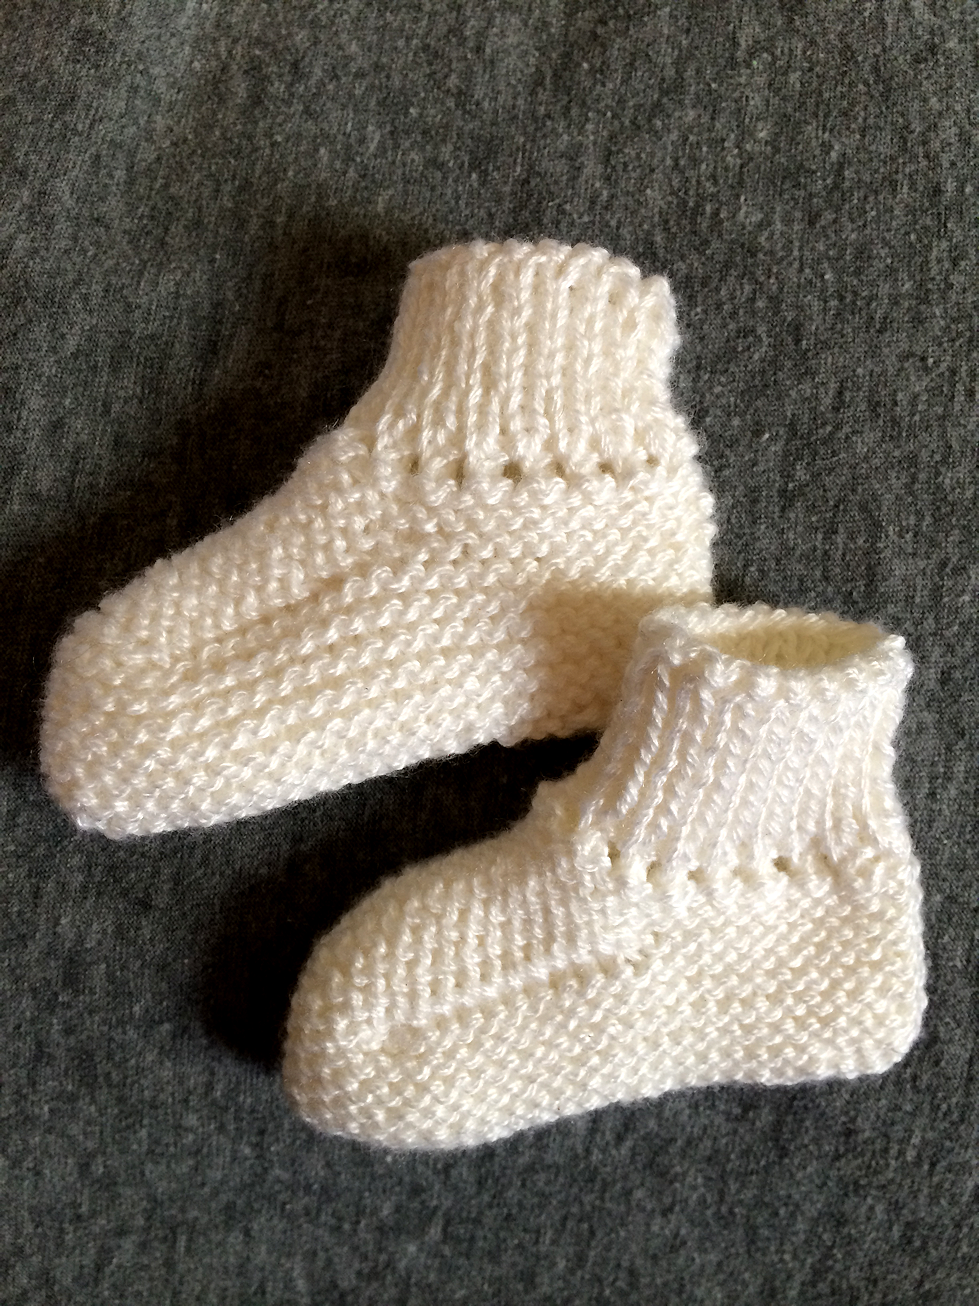 ASE Keepin\' Creative: Knitting for Babies (with free pattern links)